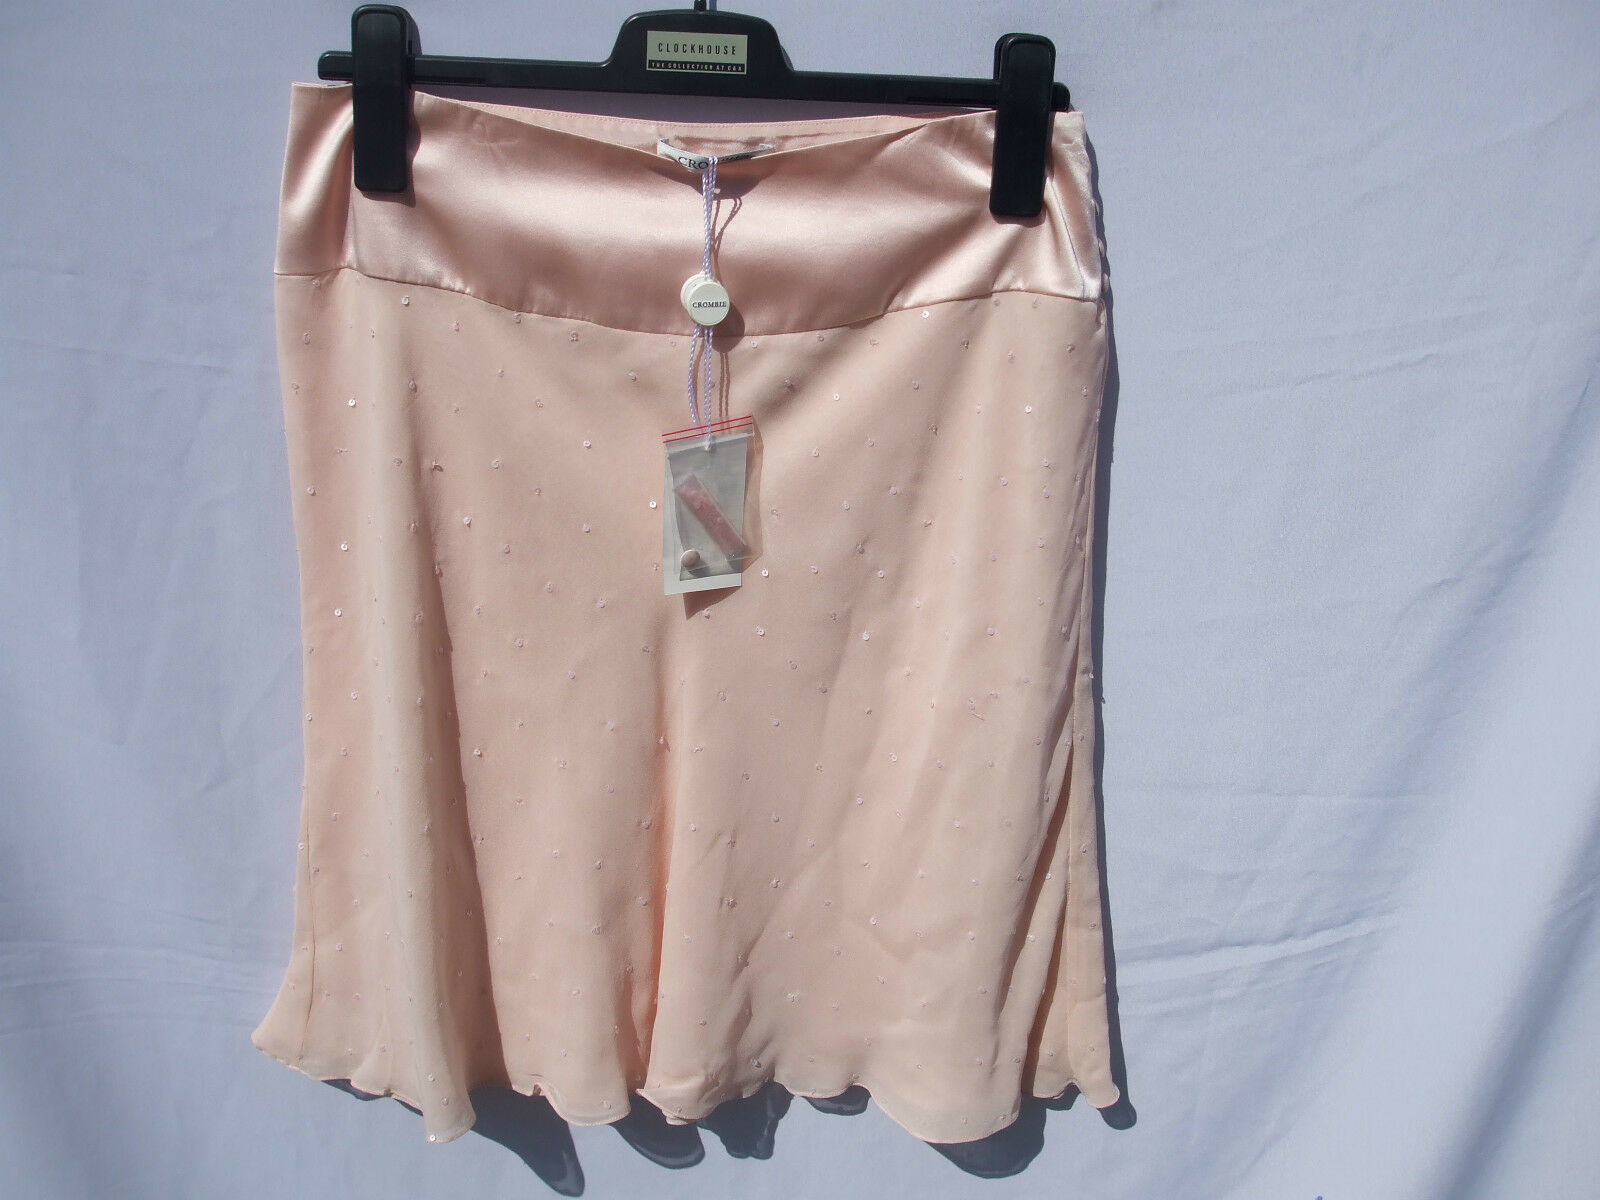 Crombie Peachy Pink Skirt, Size 10, 100% Silk, Sequin Detail Throughout SALE BN